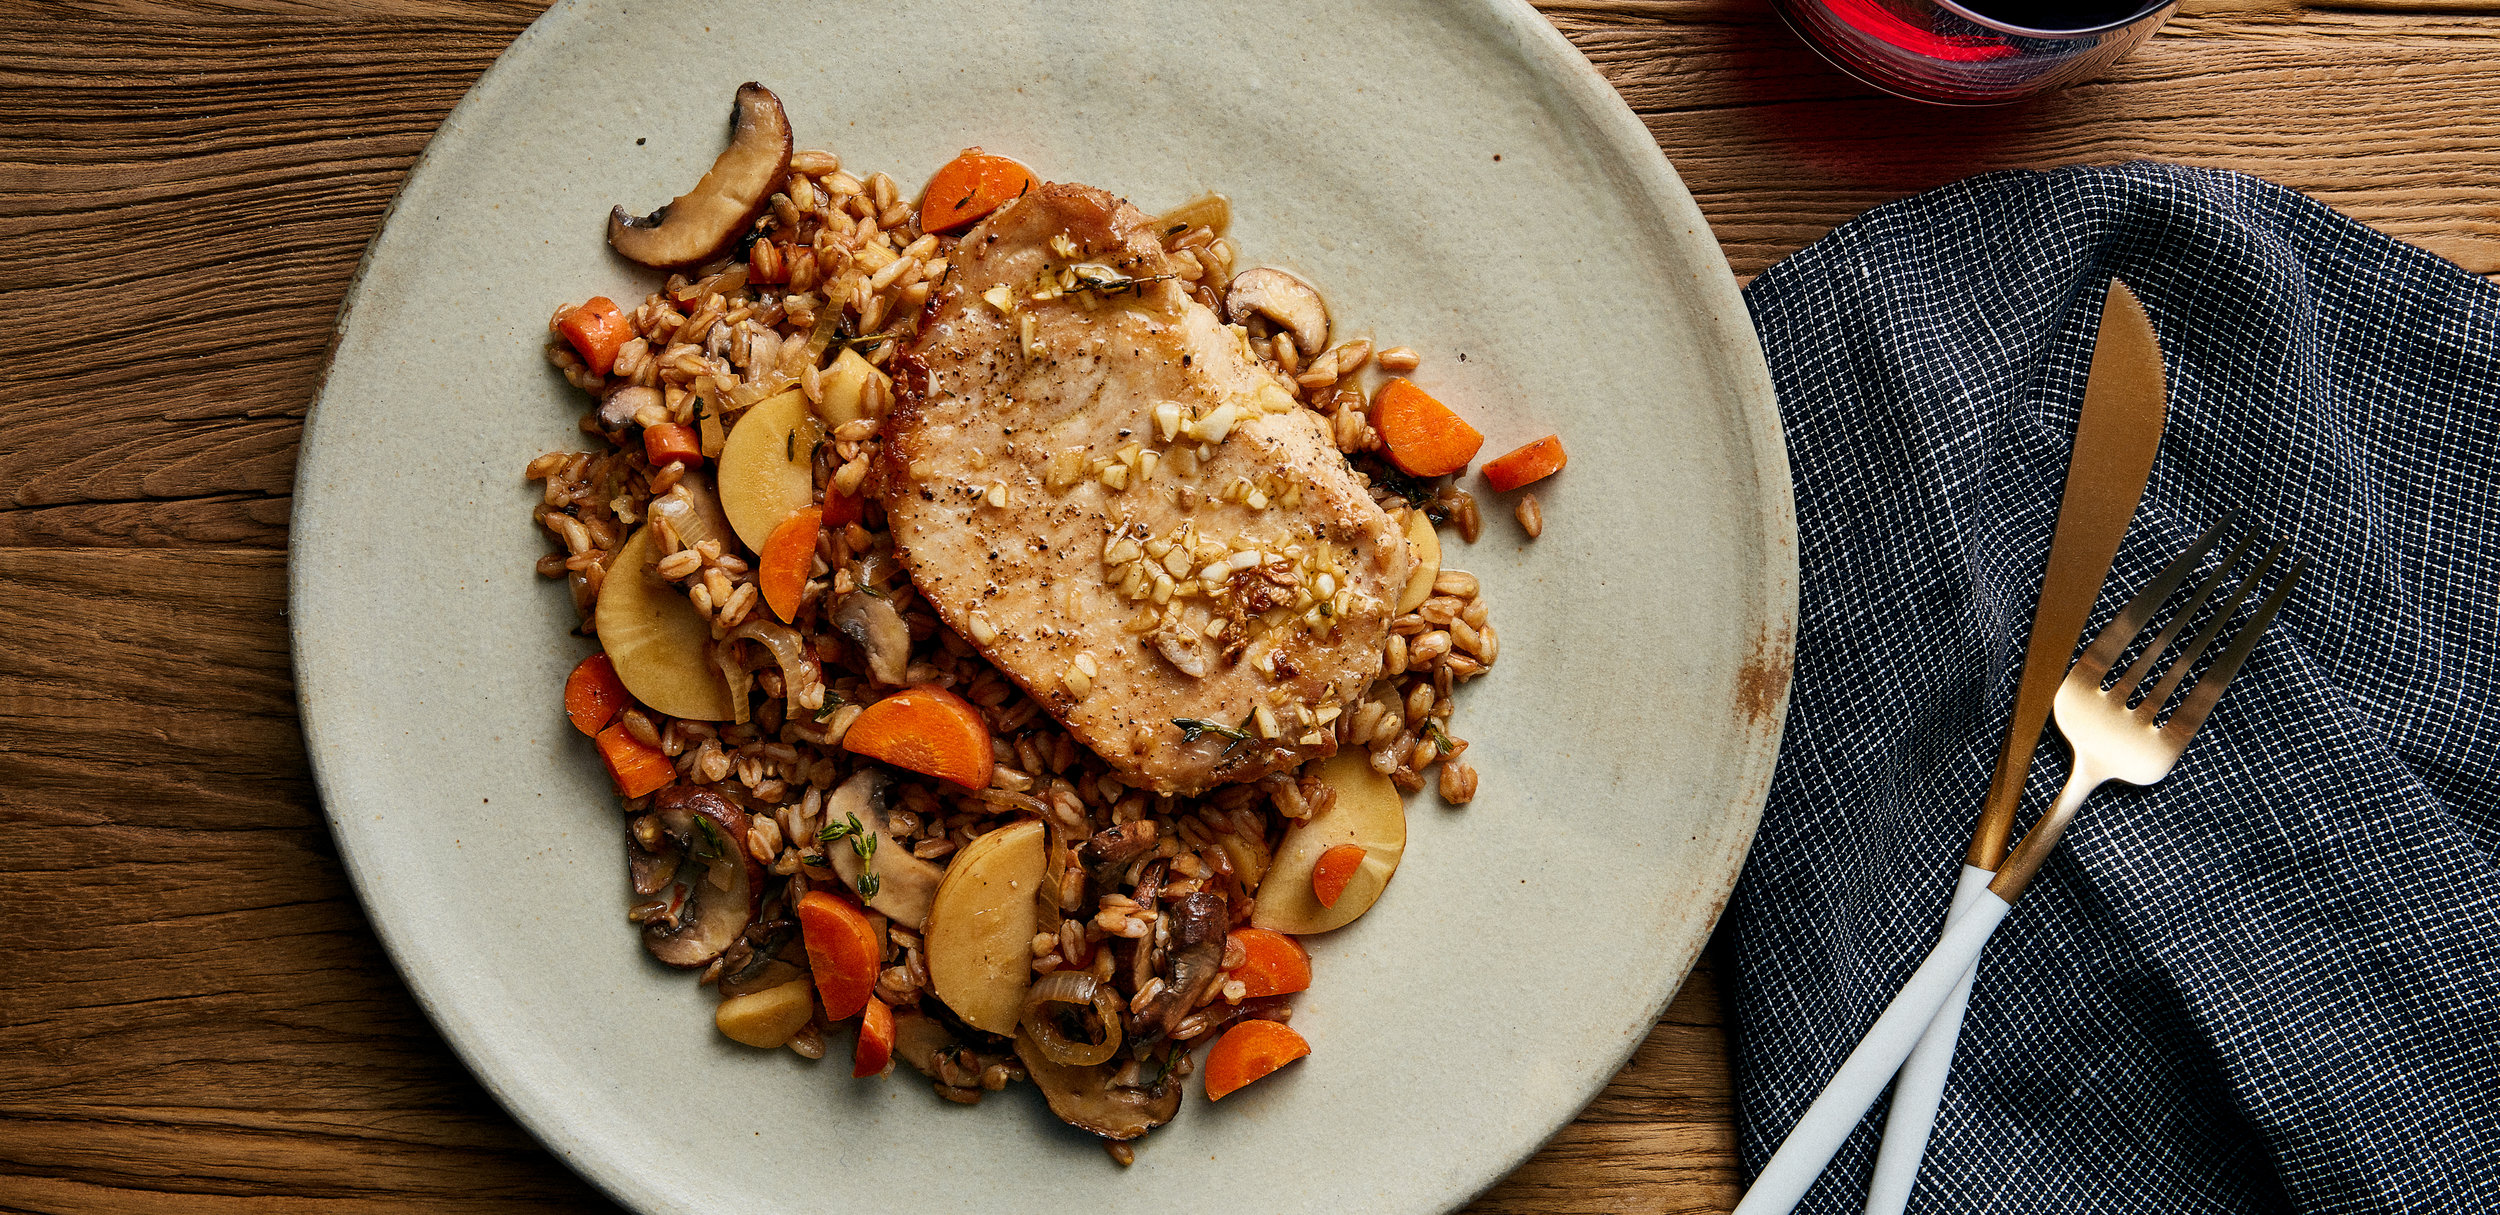 Herb Roasted Pork with Carrot, Parsnip, and Mushroom Farr — 0019 — HERO.jpg